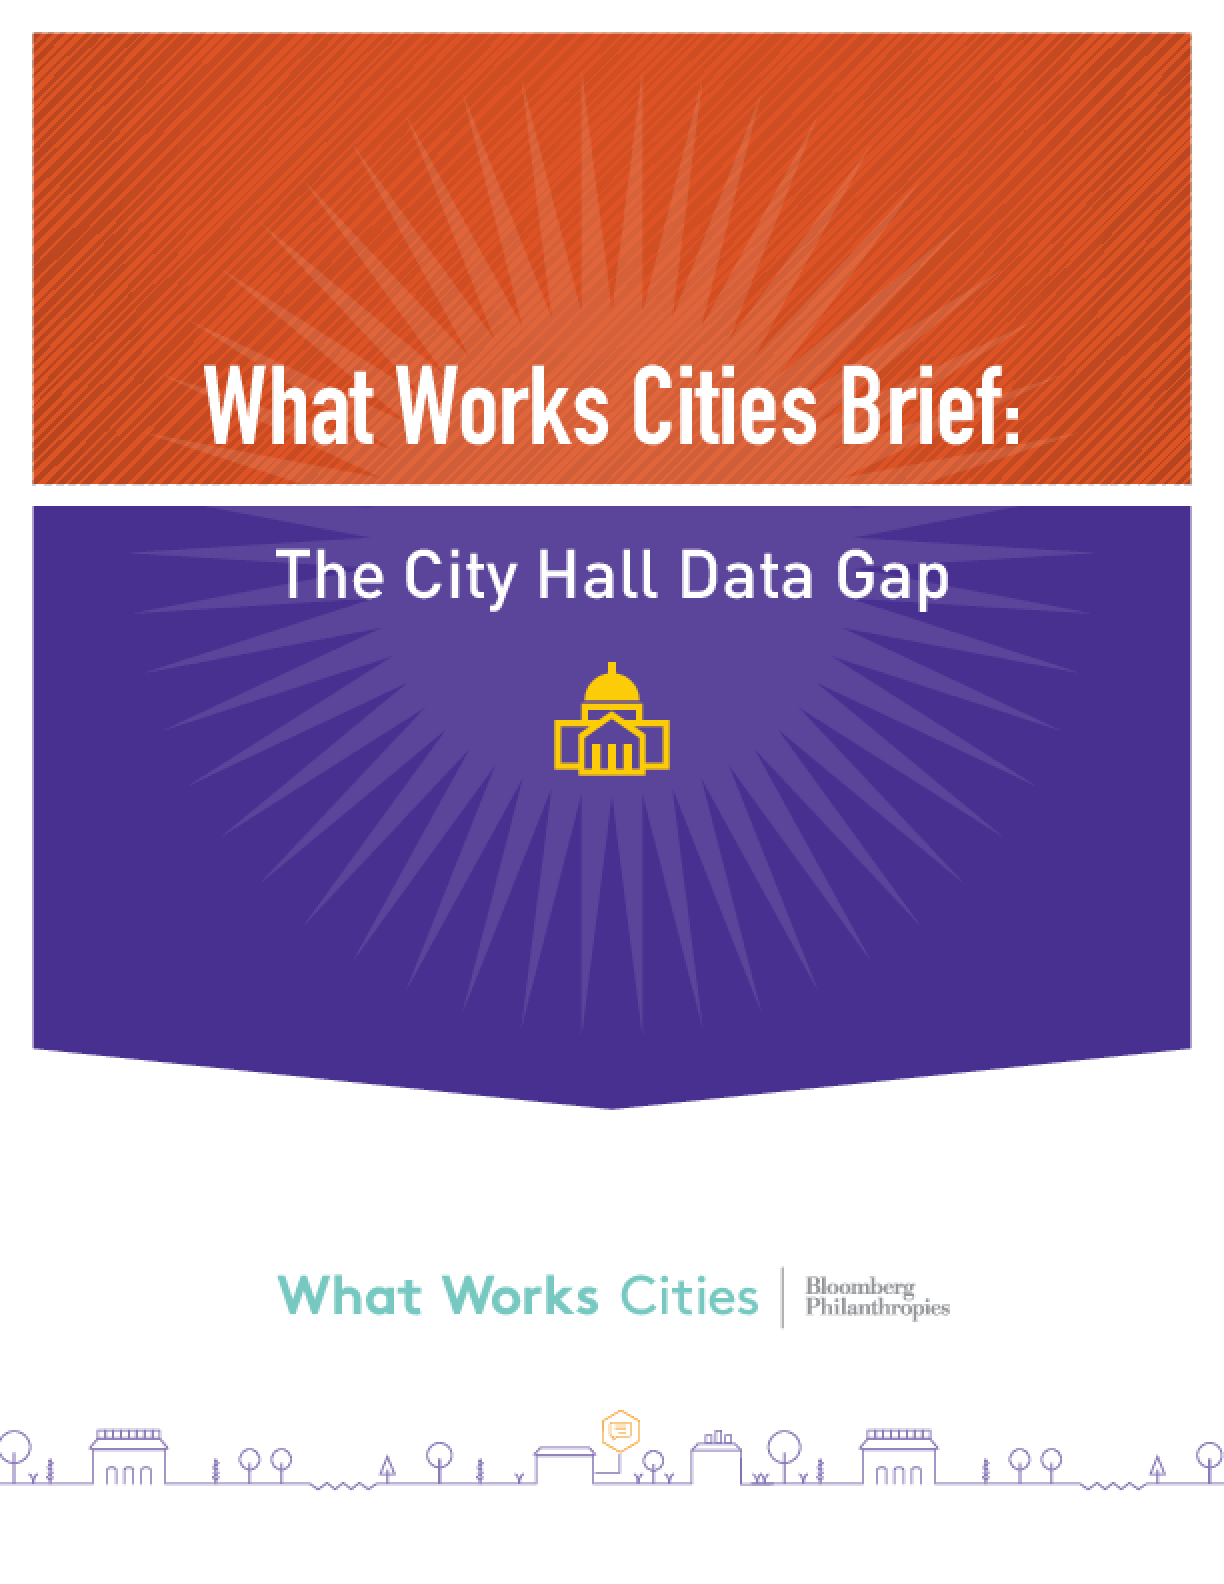 What Works Cities Brief: The City Hall Data Gap